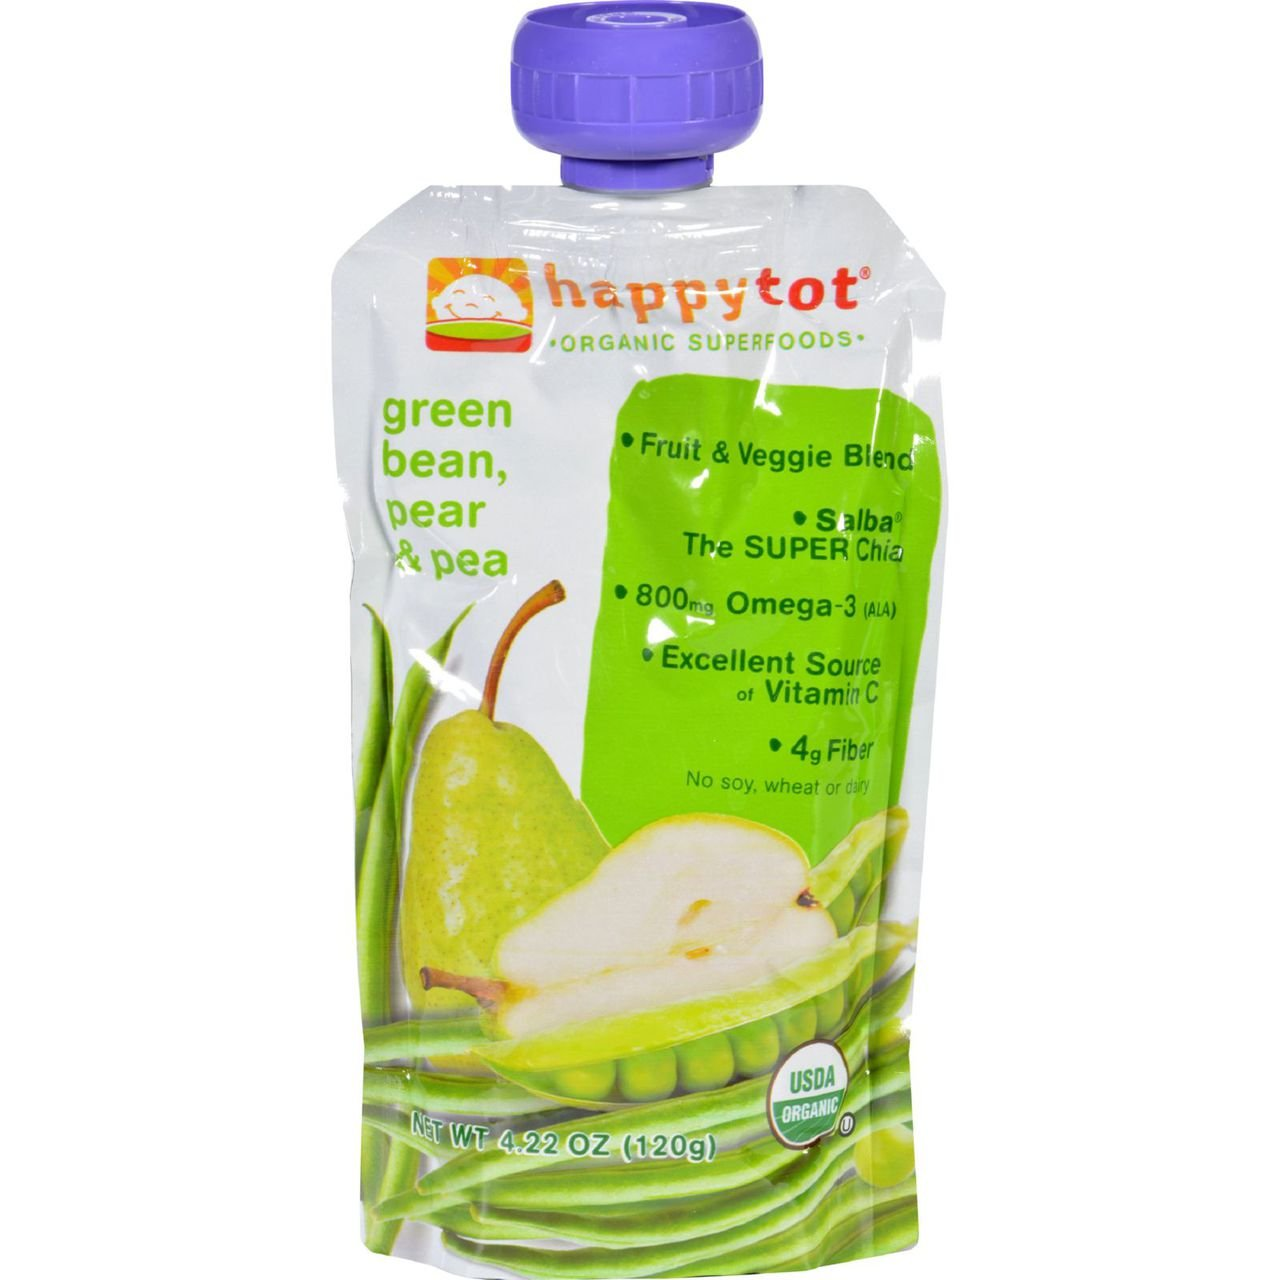 Happybaby Happy Tots - Green Beans Pears and Peas Organic Baby Super Food for Kids - 4.22 Oz pouch